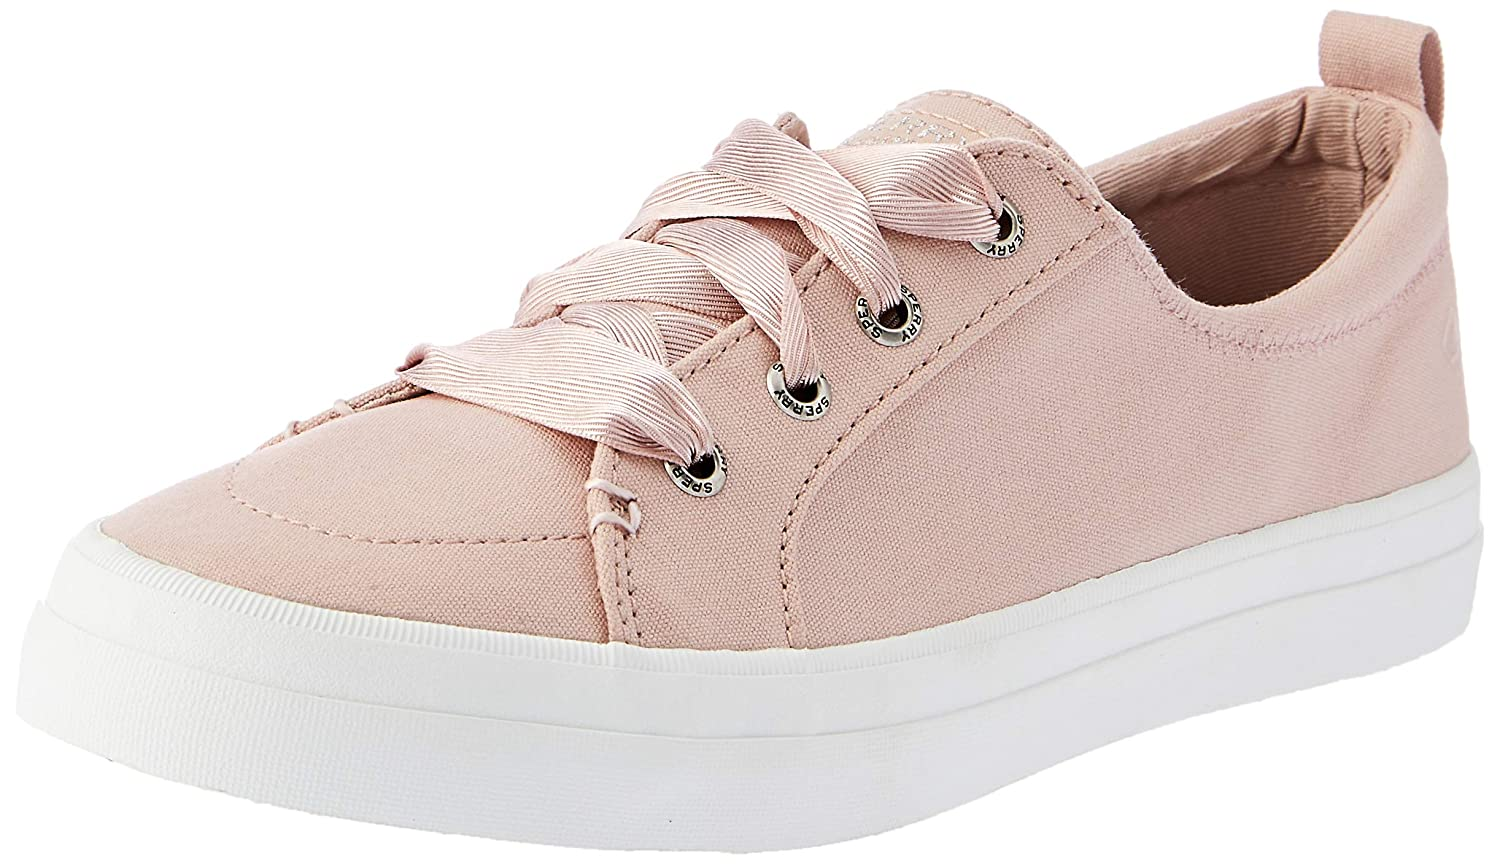 Sperry Sperry Sperry Top-Sider Woherren Crest Vibe Satin Lace Turnschuhe 46e3ca